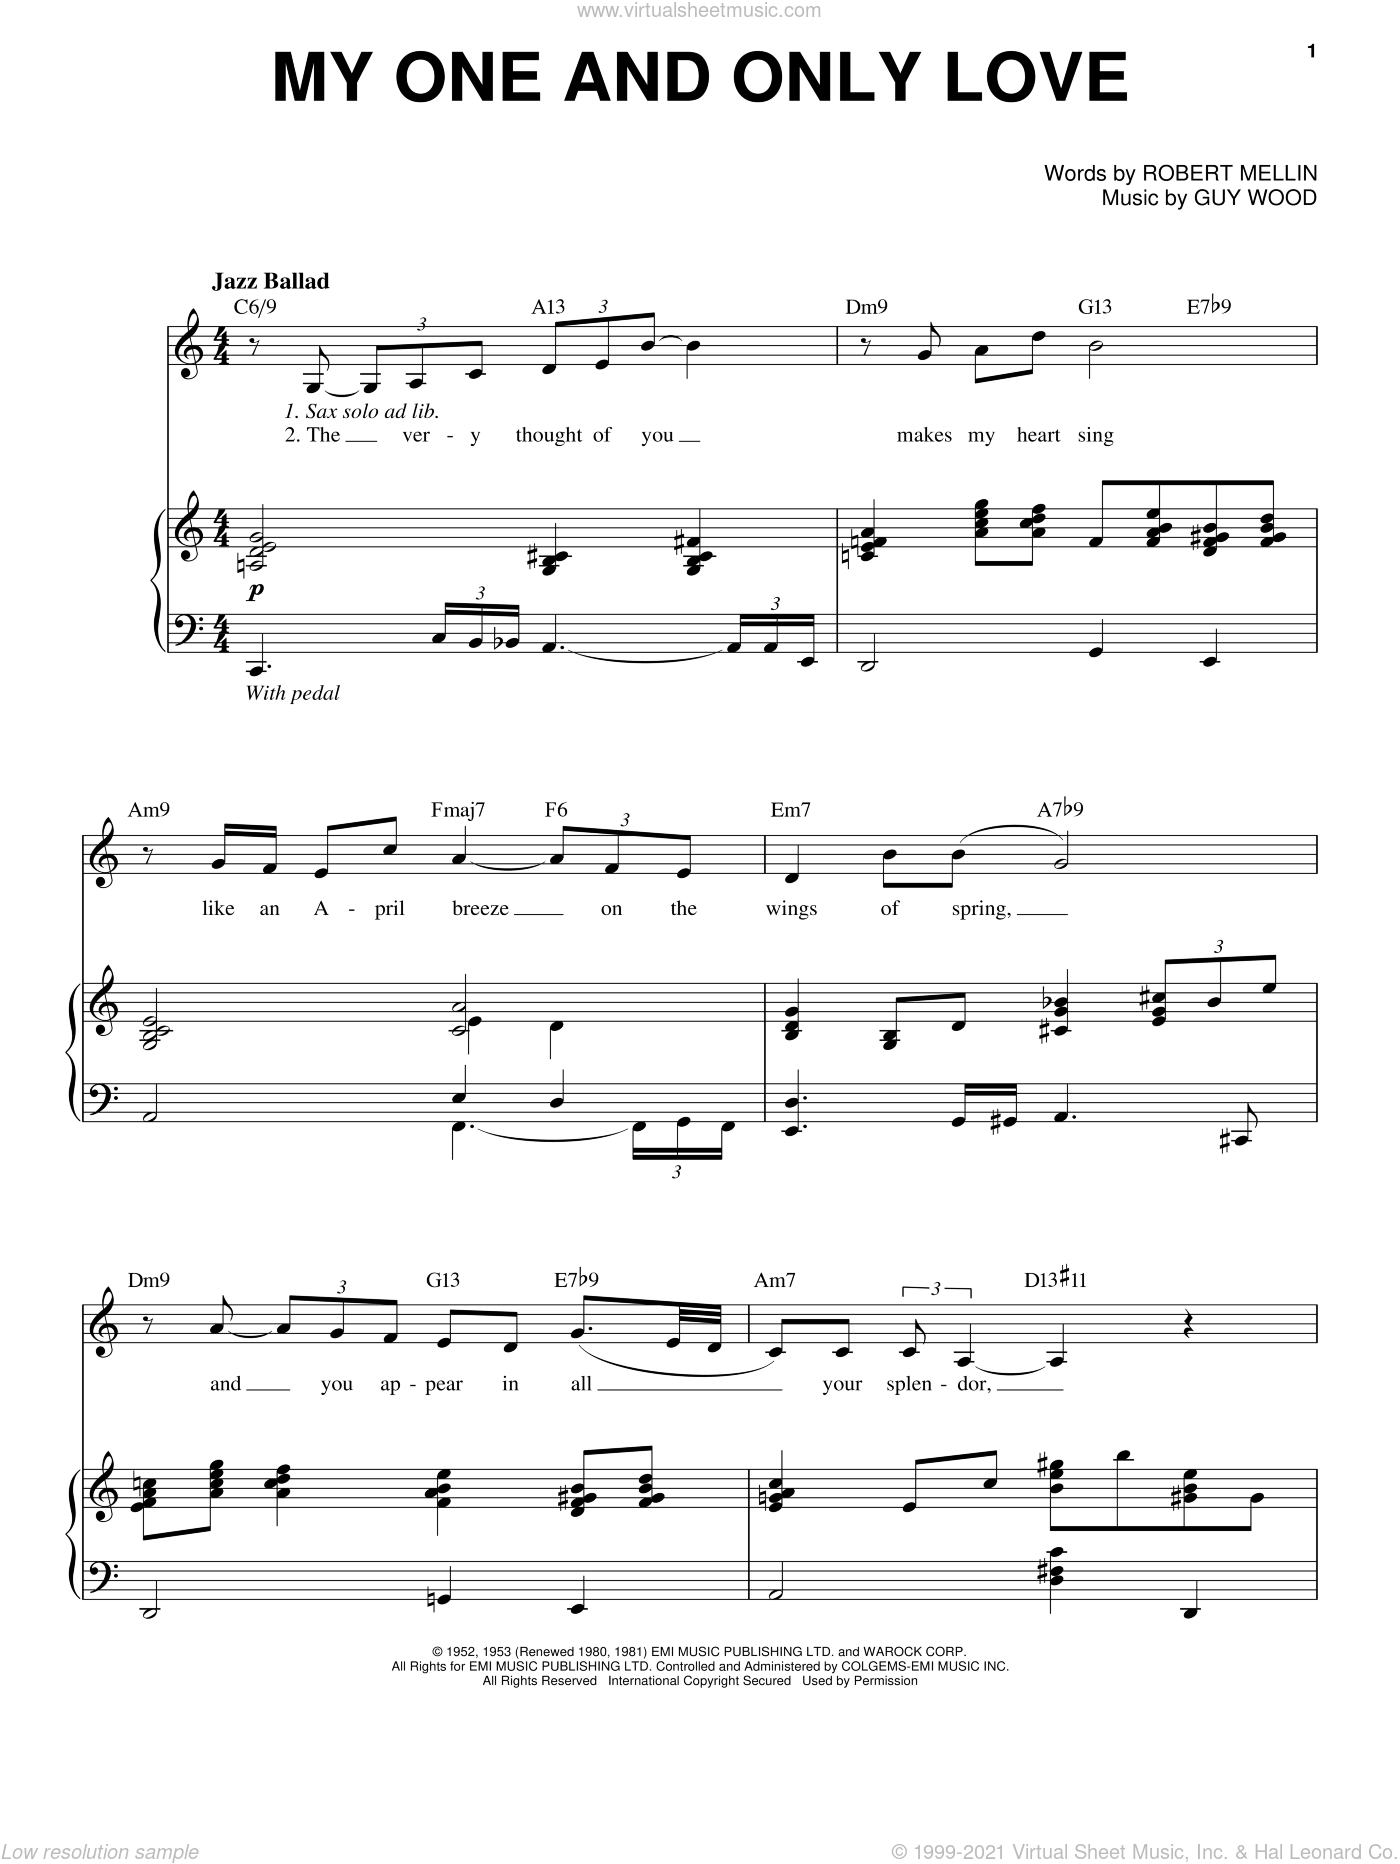 My One And Only Love sheet music for voice and piano by Robert Mellin